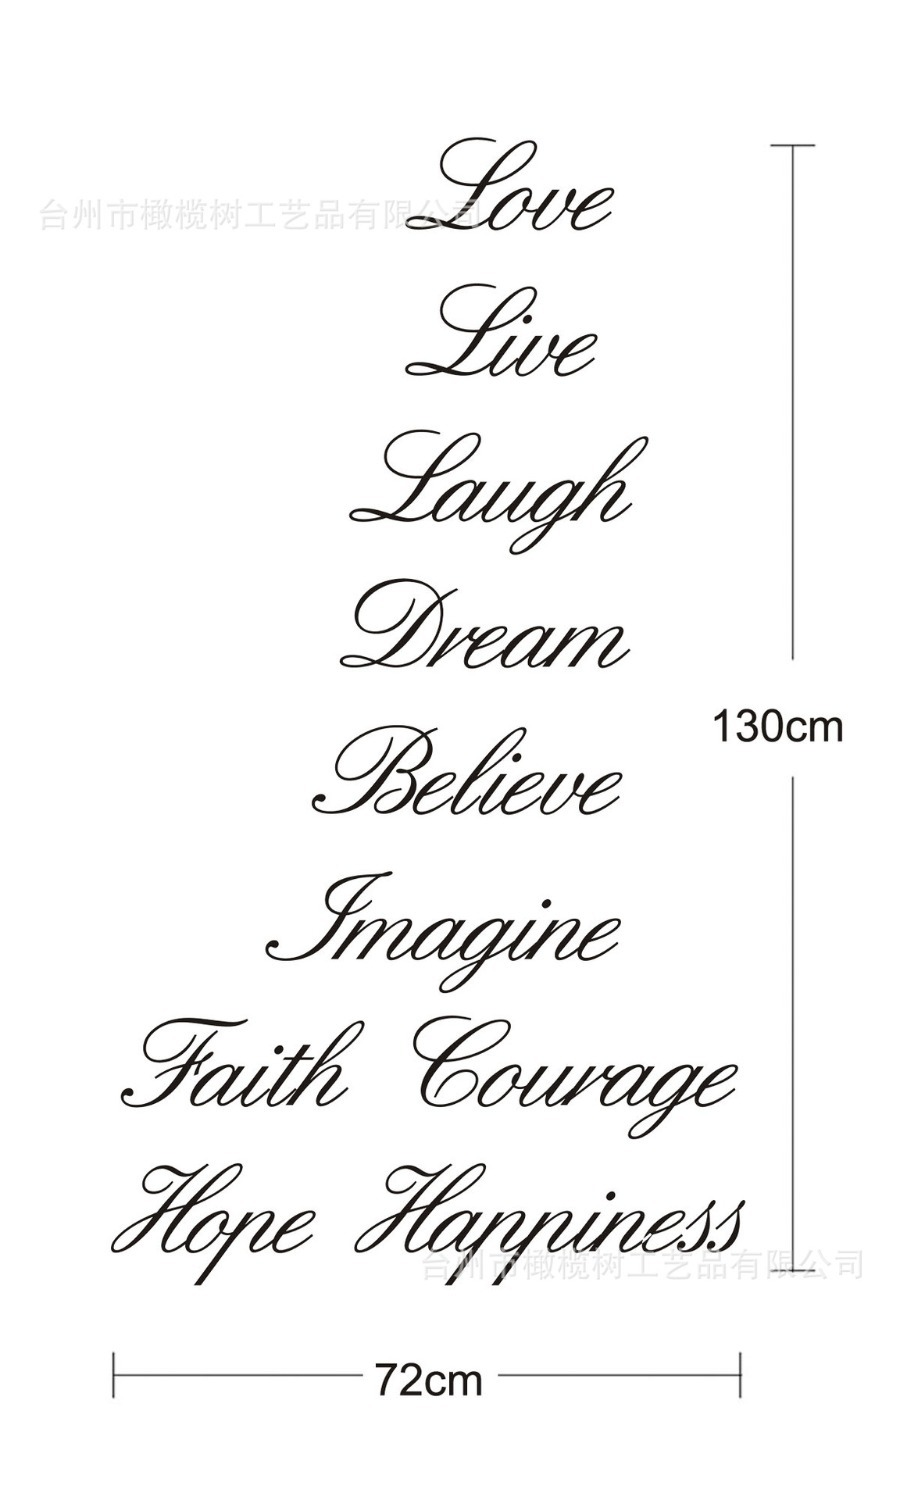 vinyl shoes picture more detailed picture about 2 designs love 2 designs love live laugh dream believe imagine faith courage hope happiness removable pvc wall decals